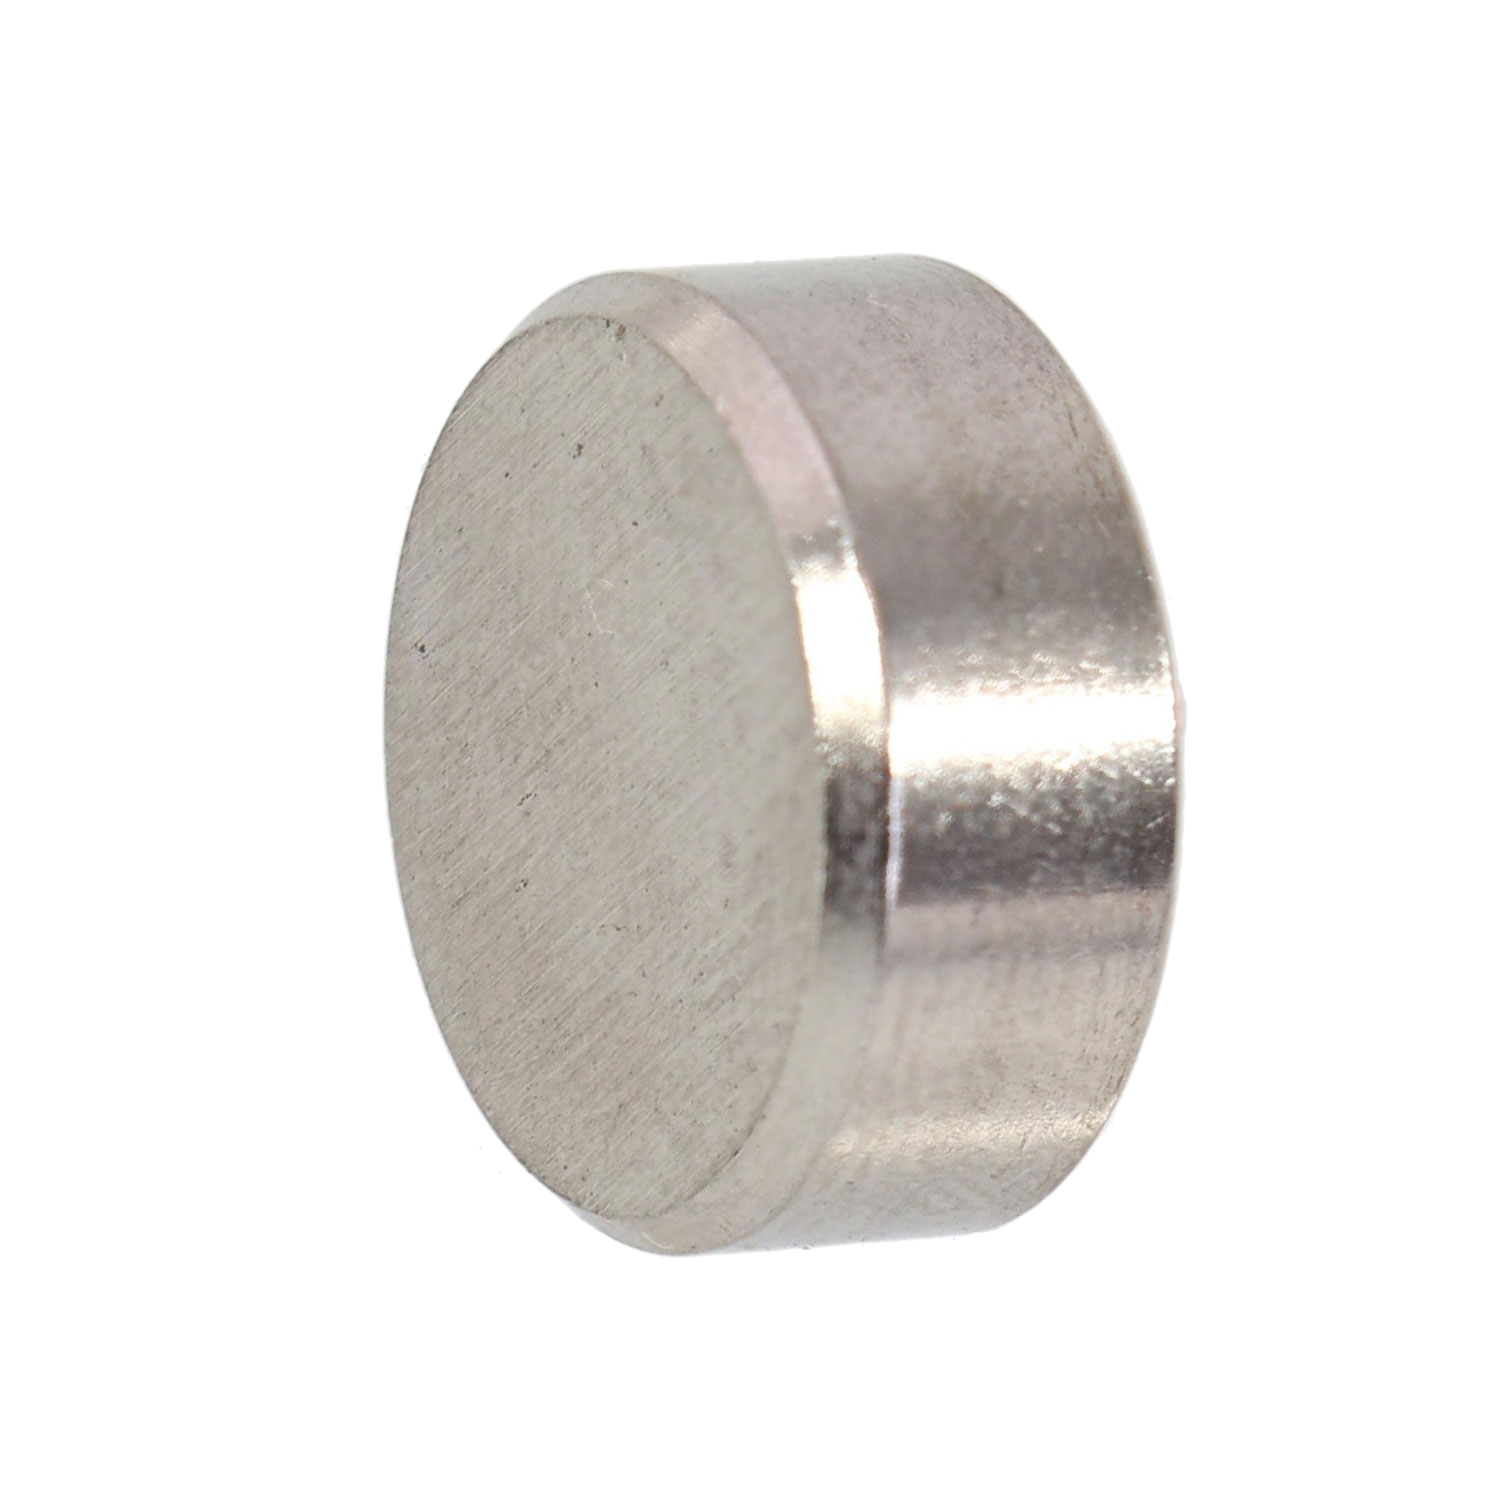 1 4 Quot Type 316 Stainless Steel End Cap To Use As Nut